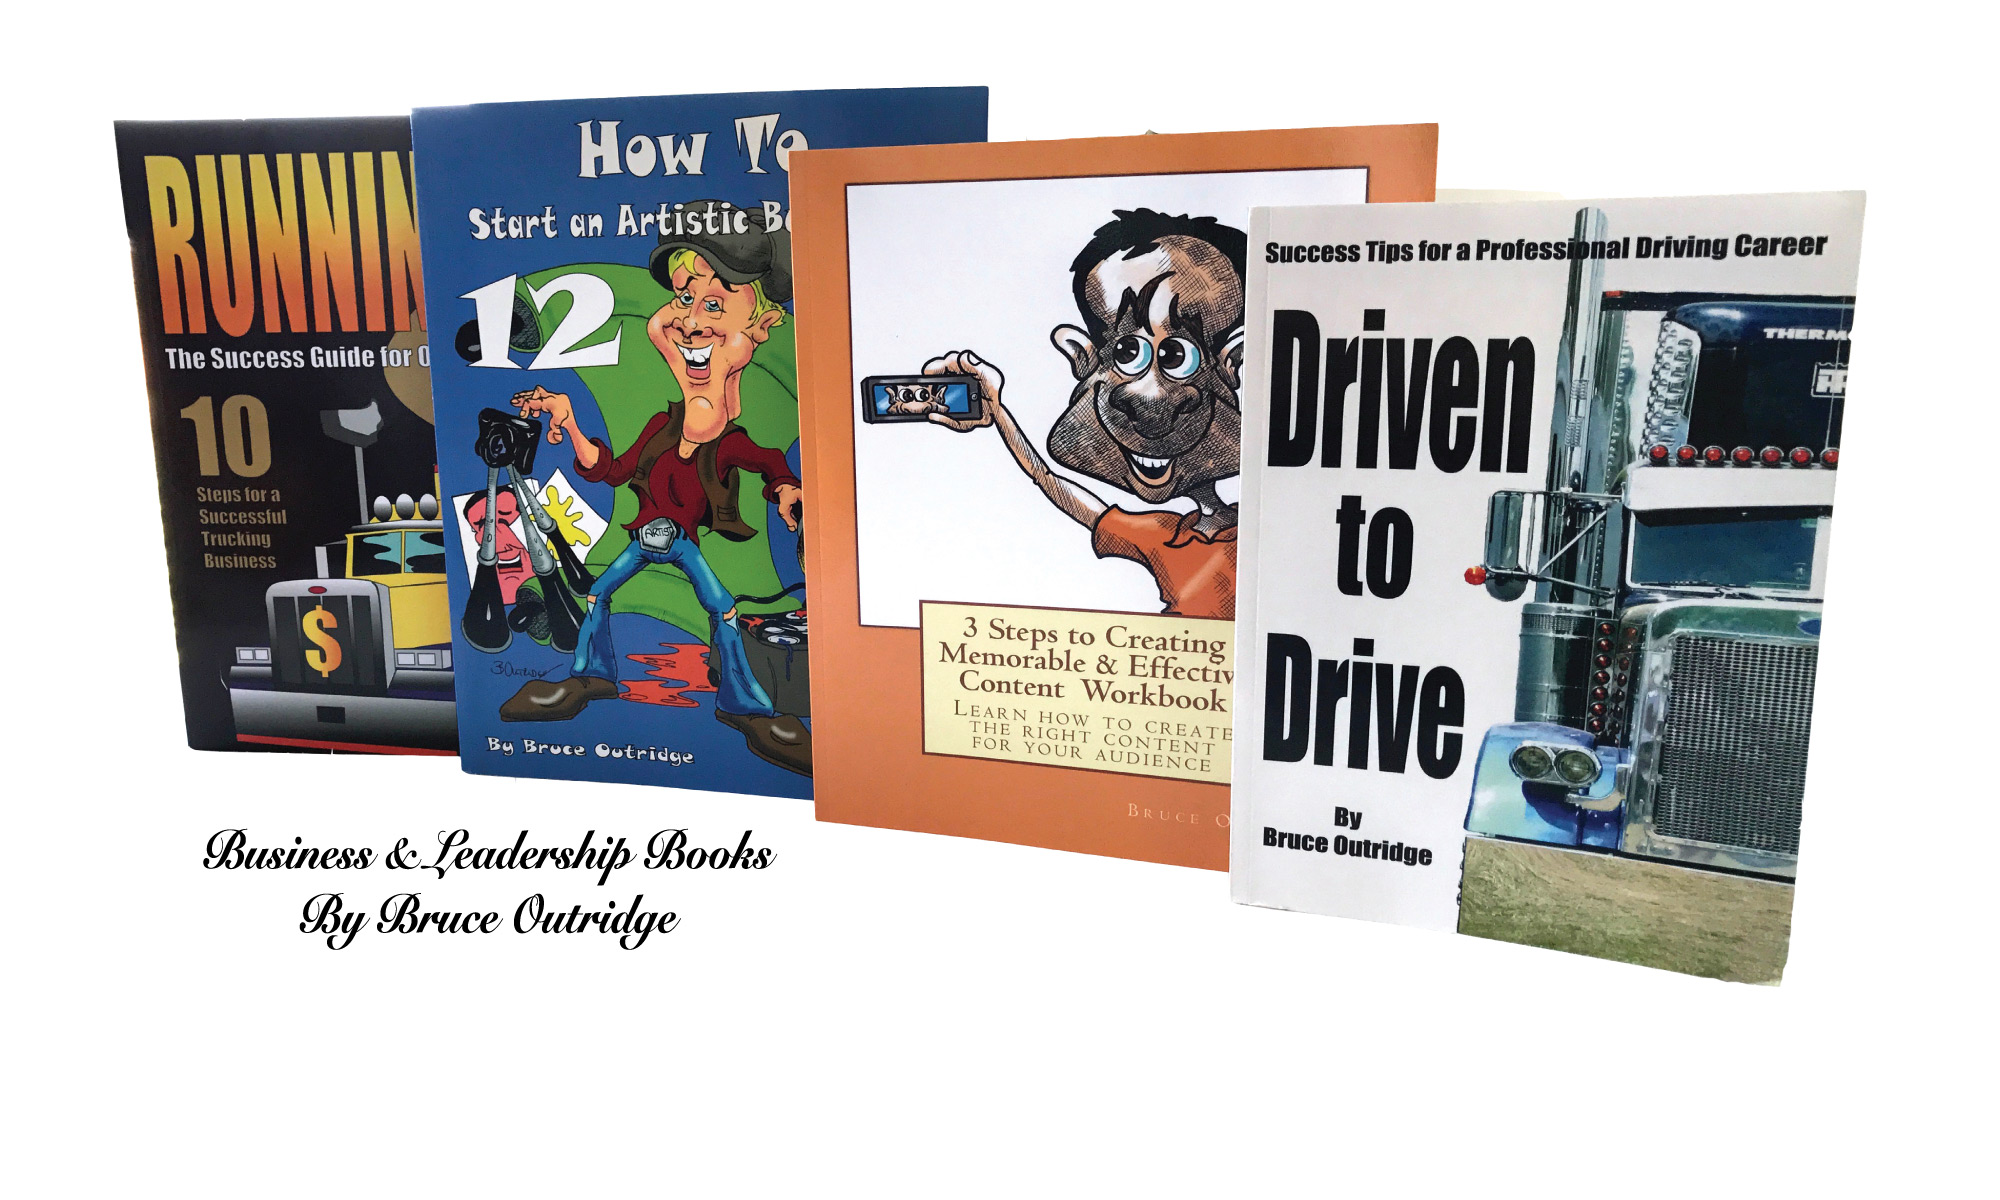 Books by Bruce Outridge